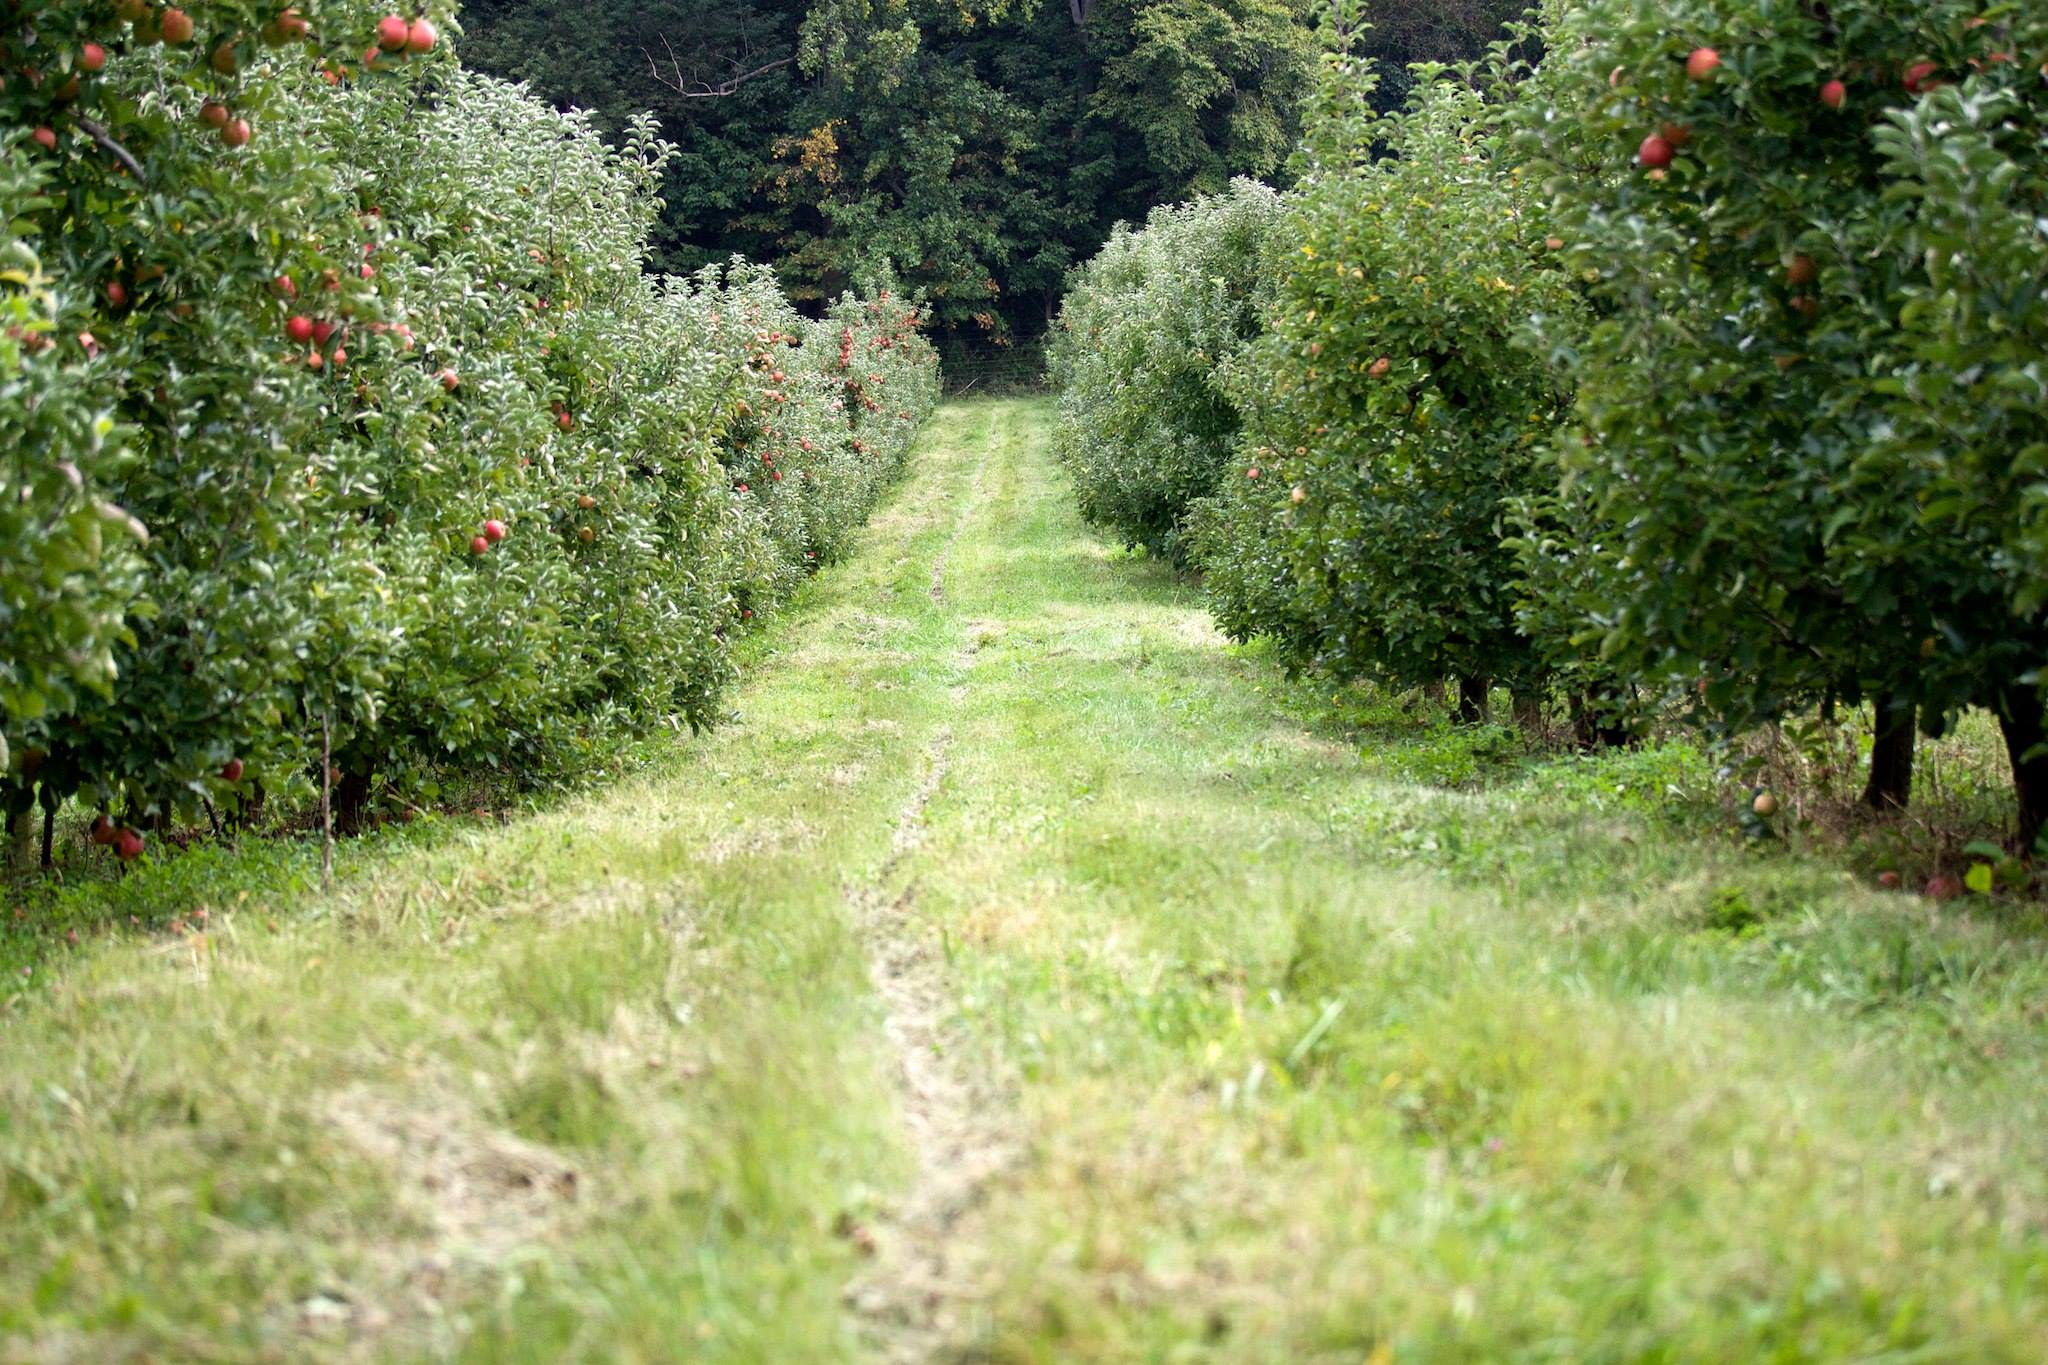 The beautiful orchard.